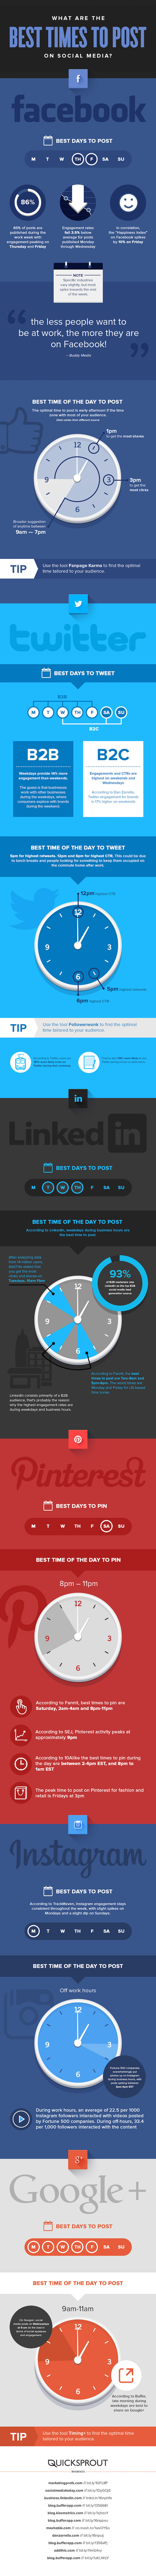 When to post on Facebook, Twitter, LinkedIn and other top social networks | Australian Tourism Export Council | Scoop.it